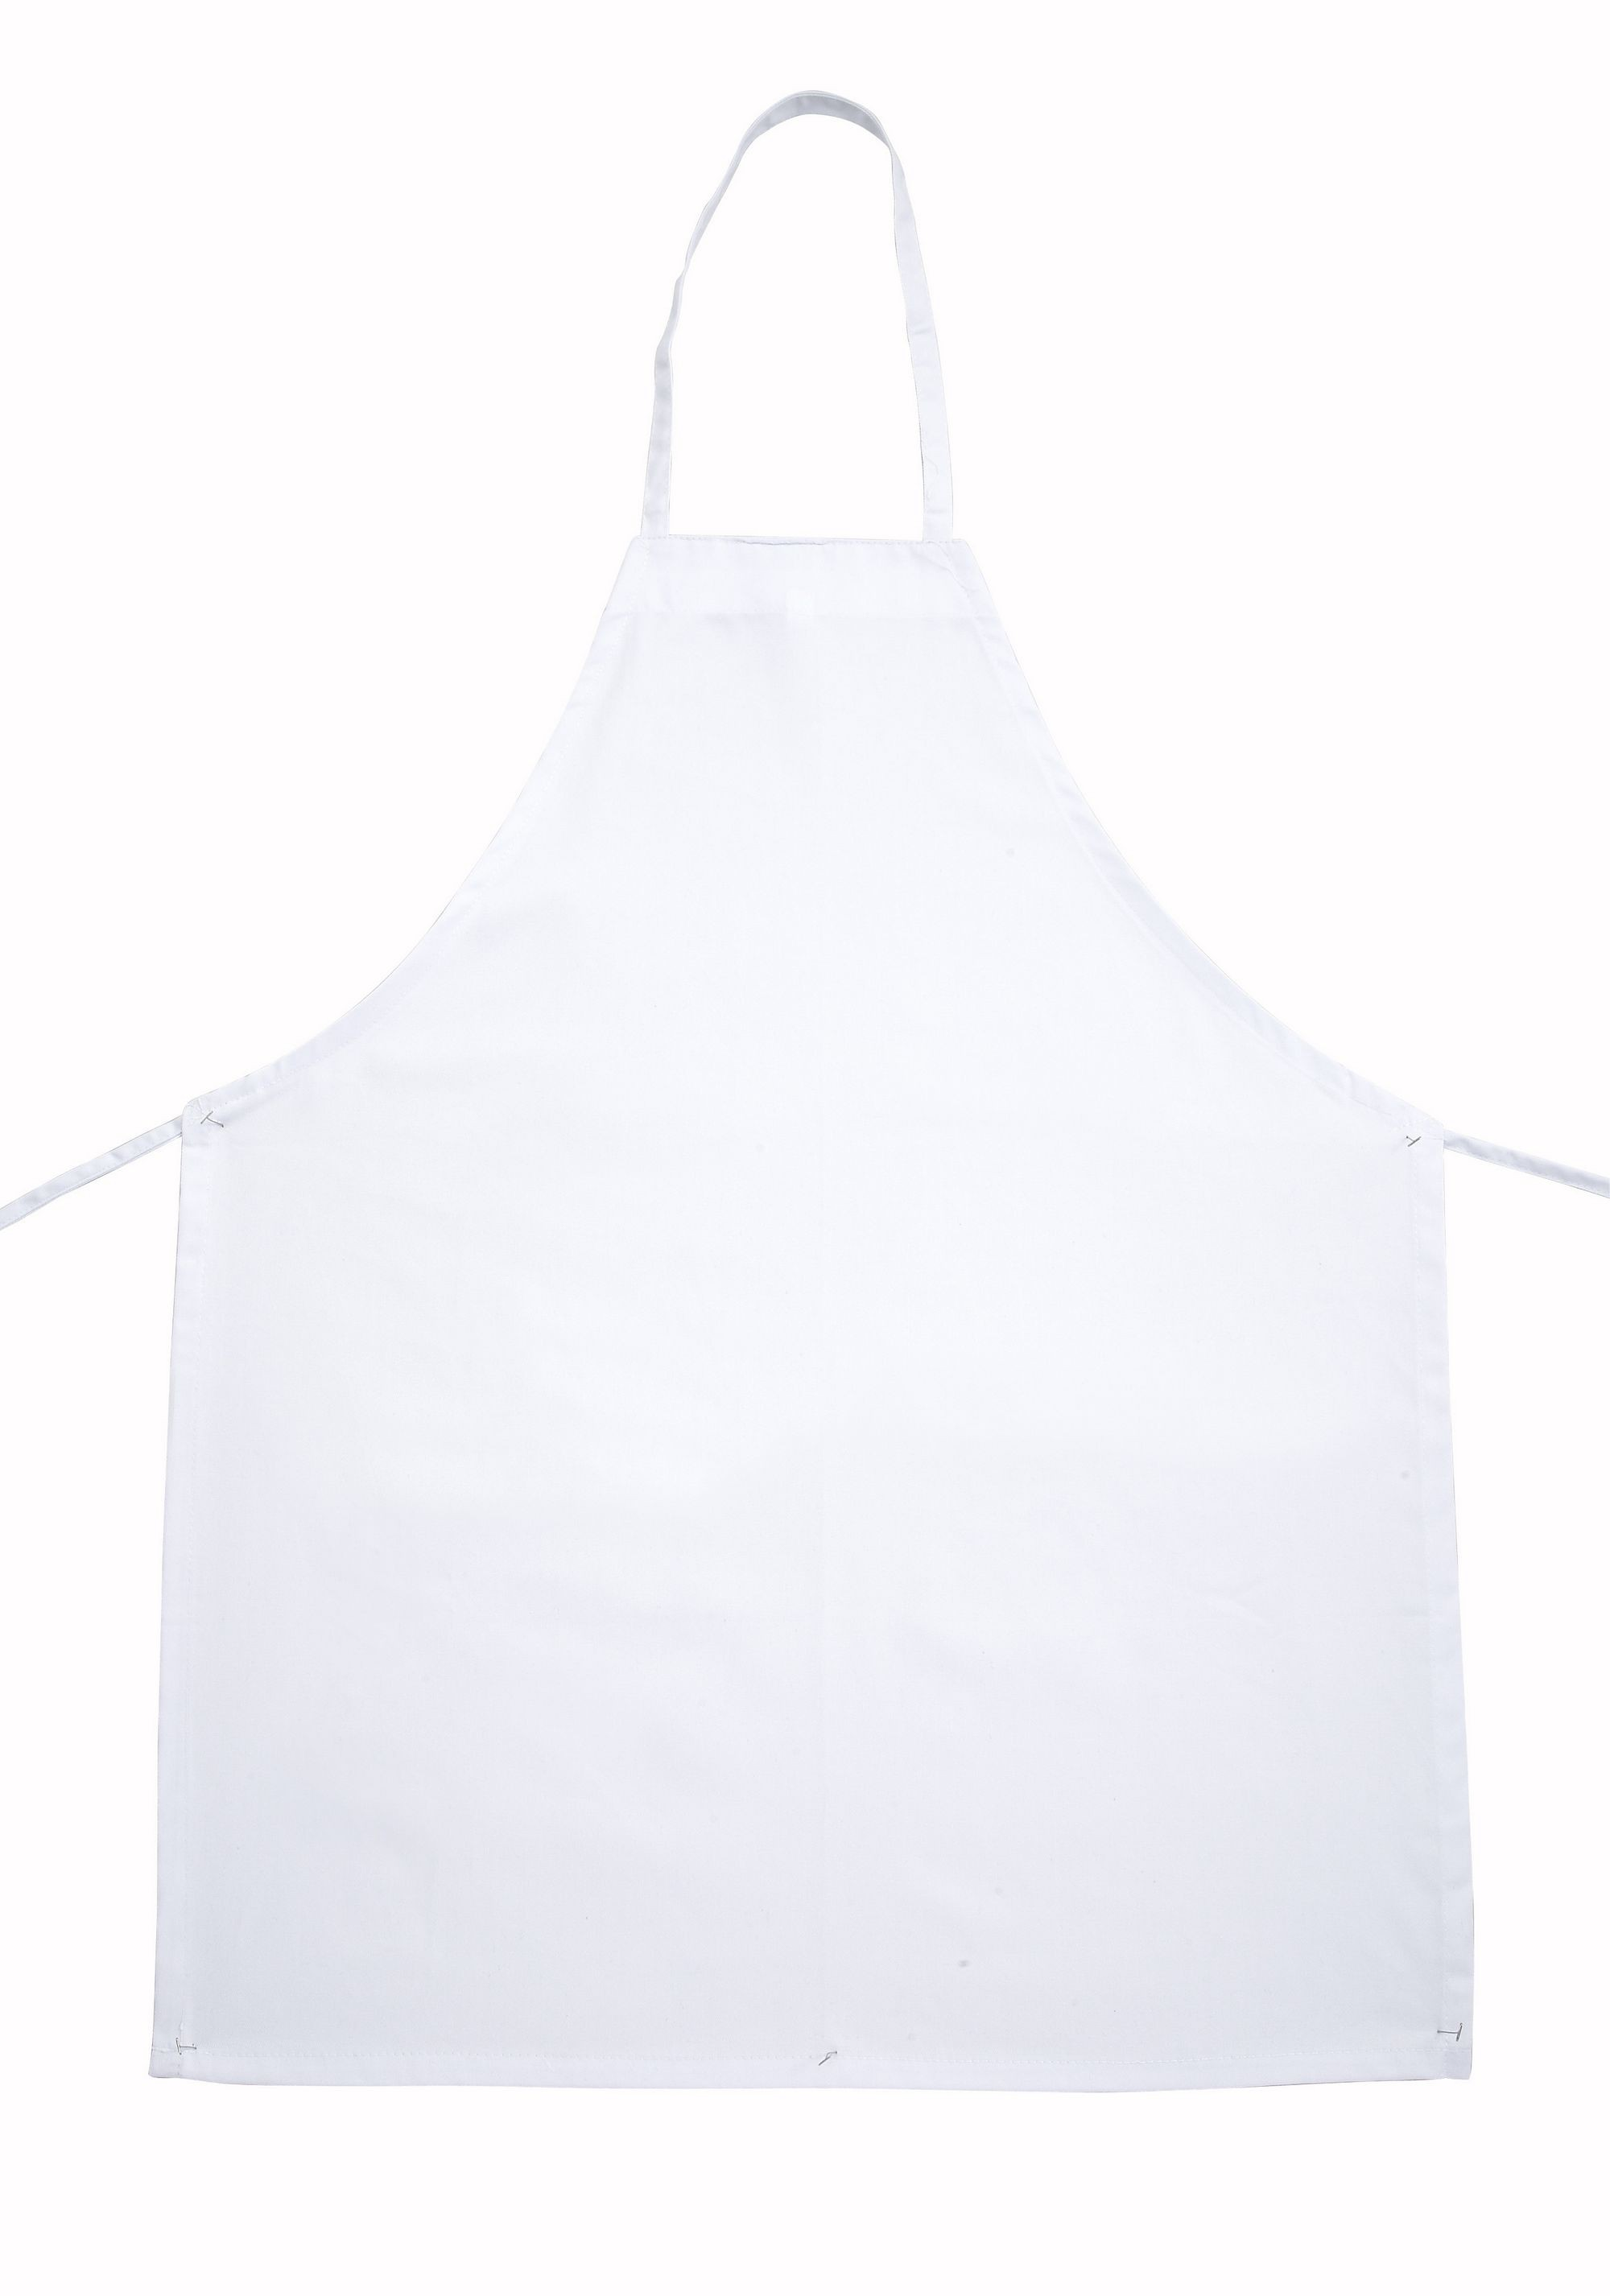 White Poly/Cotton Bib Apron - 31 X 26-1/2